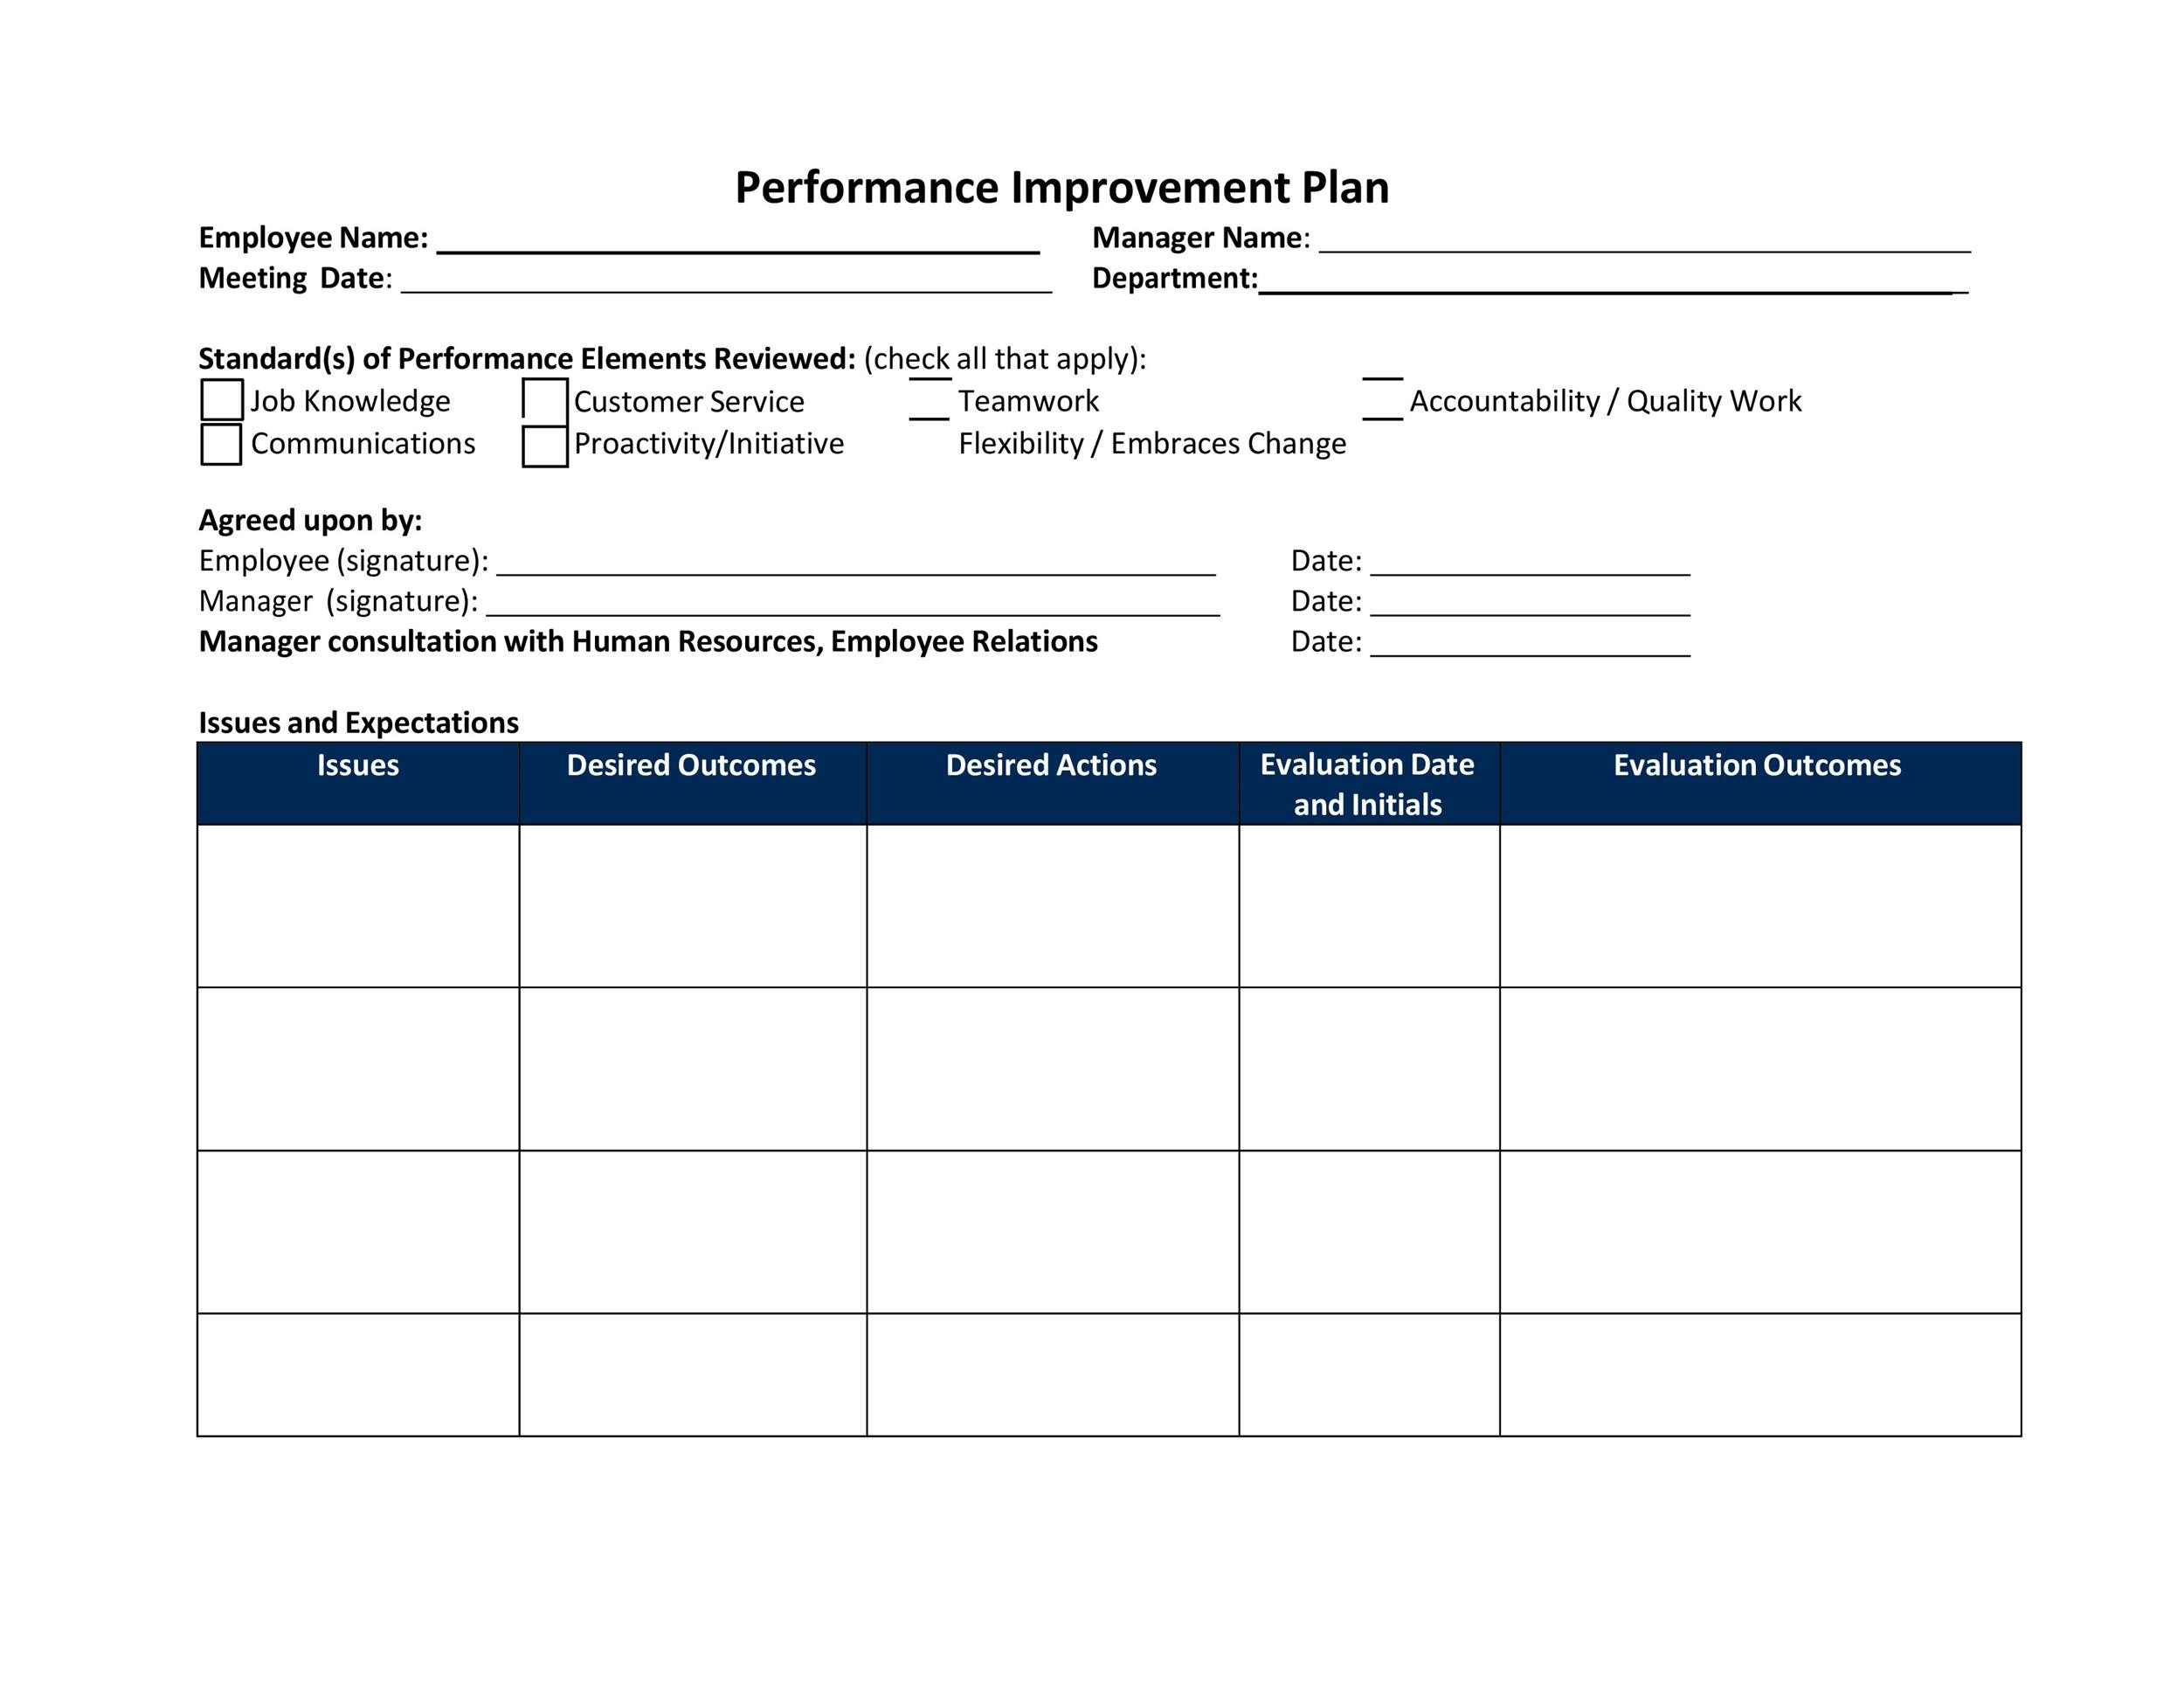 Letter of expectation template daily task journal the 365 for 30 day performance improvement plan template